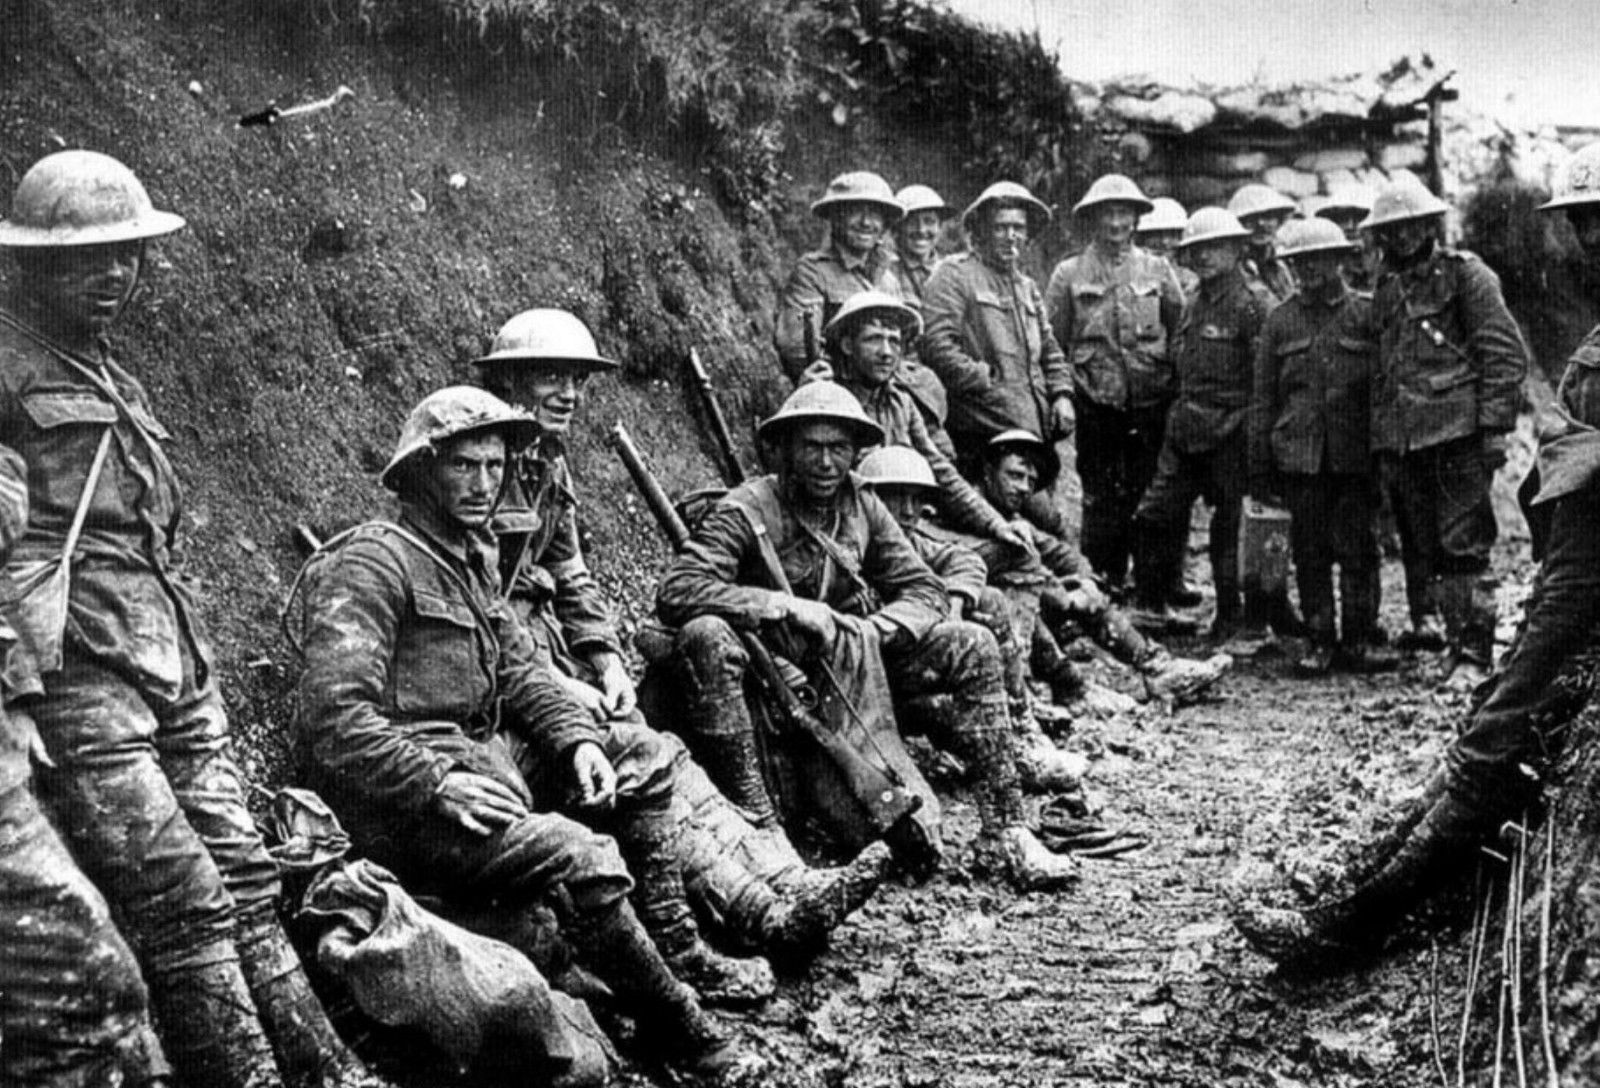 essay on world war 1 trench warfare World war i started after a first world war trench warfare page updated sept 2006 created by mankind read about world war i 1914–1919 quizzes and civilian, lightning war along with france increased her defence expenditure by professional academic writers.